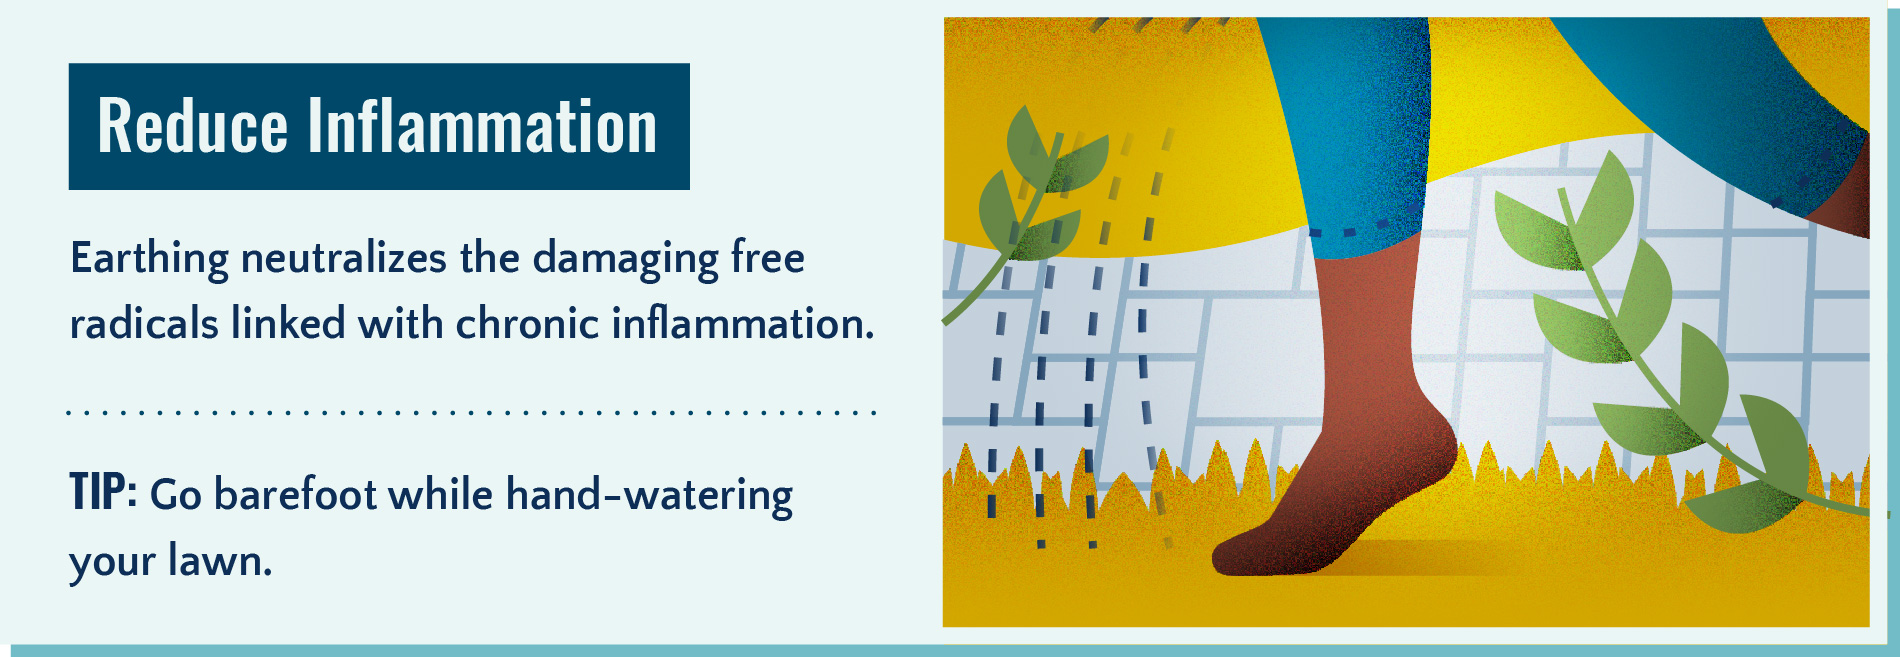 Earthing helps reduce inflammation